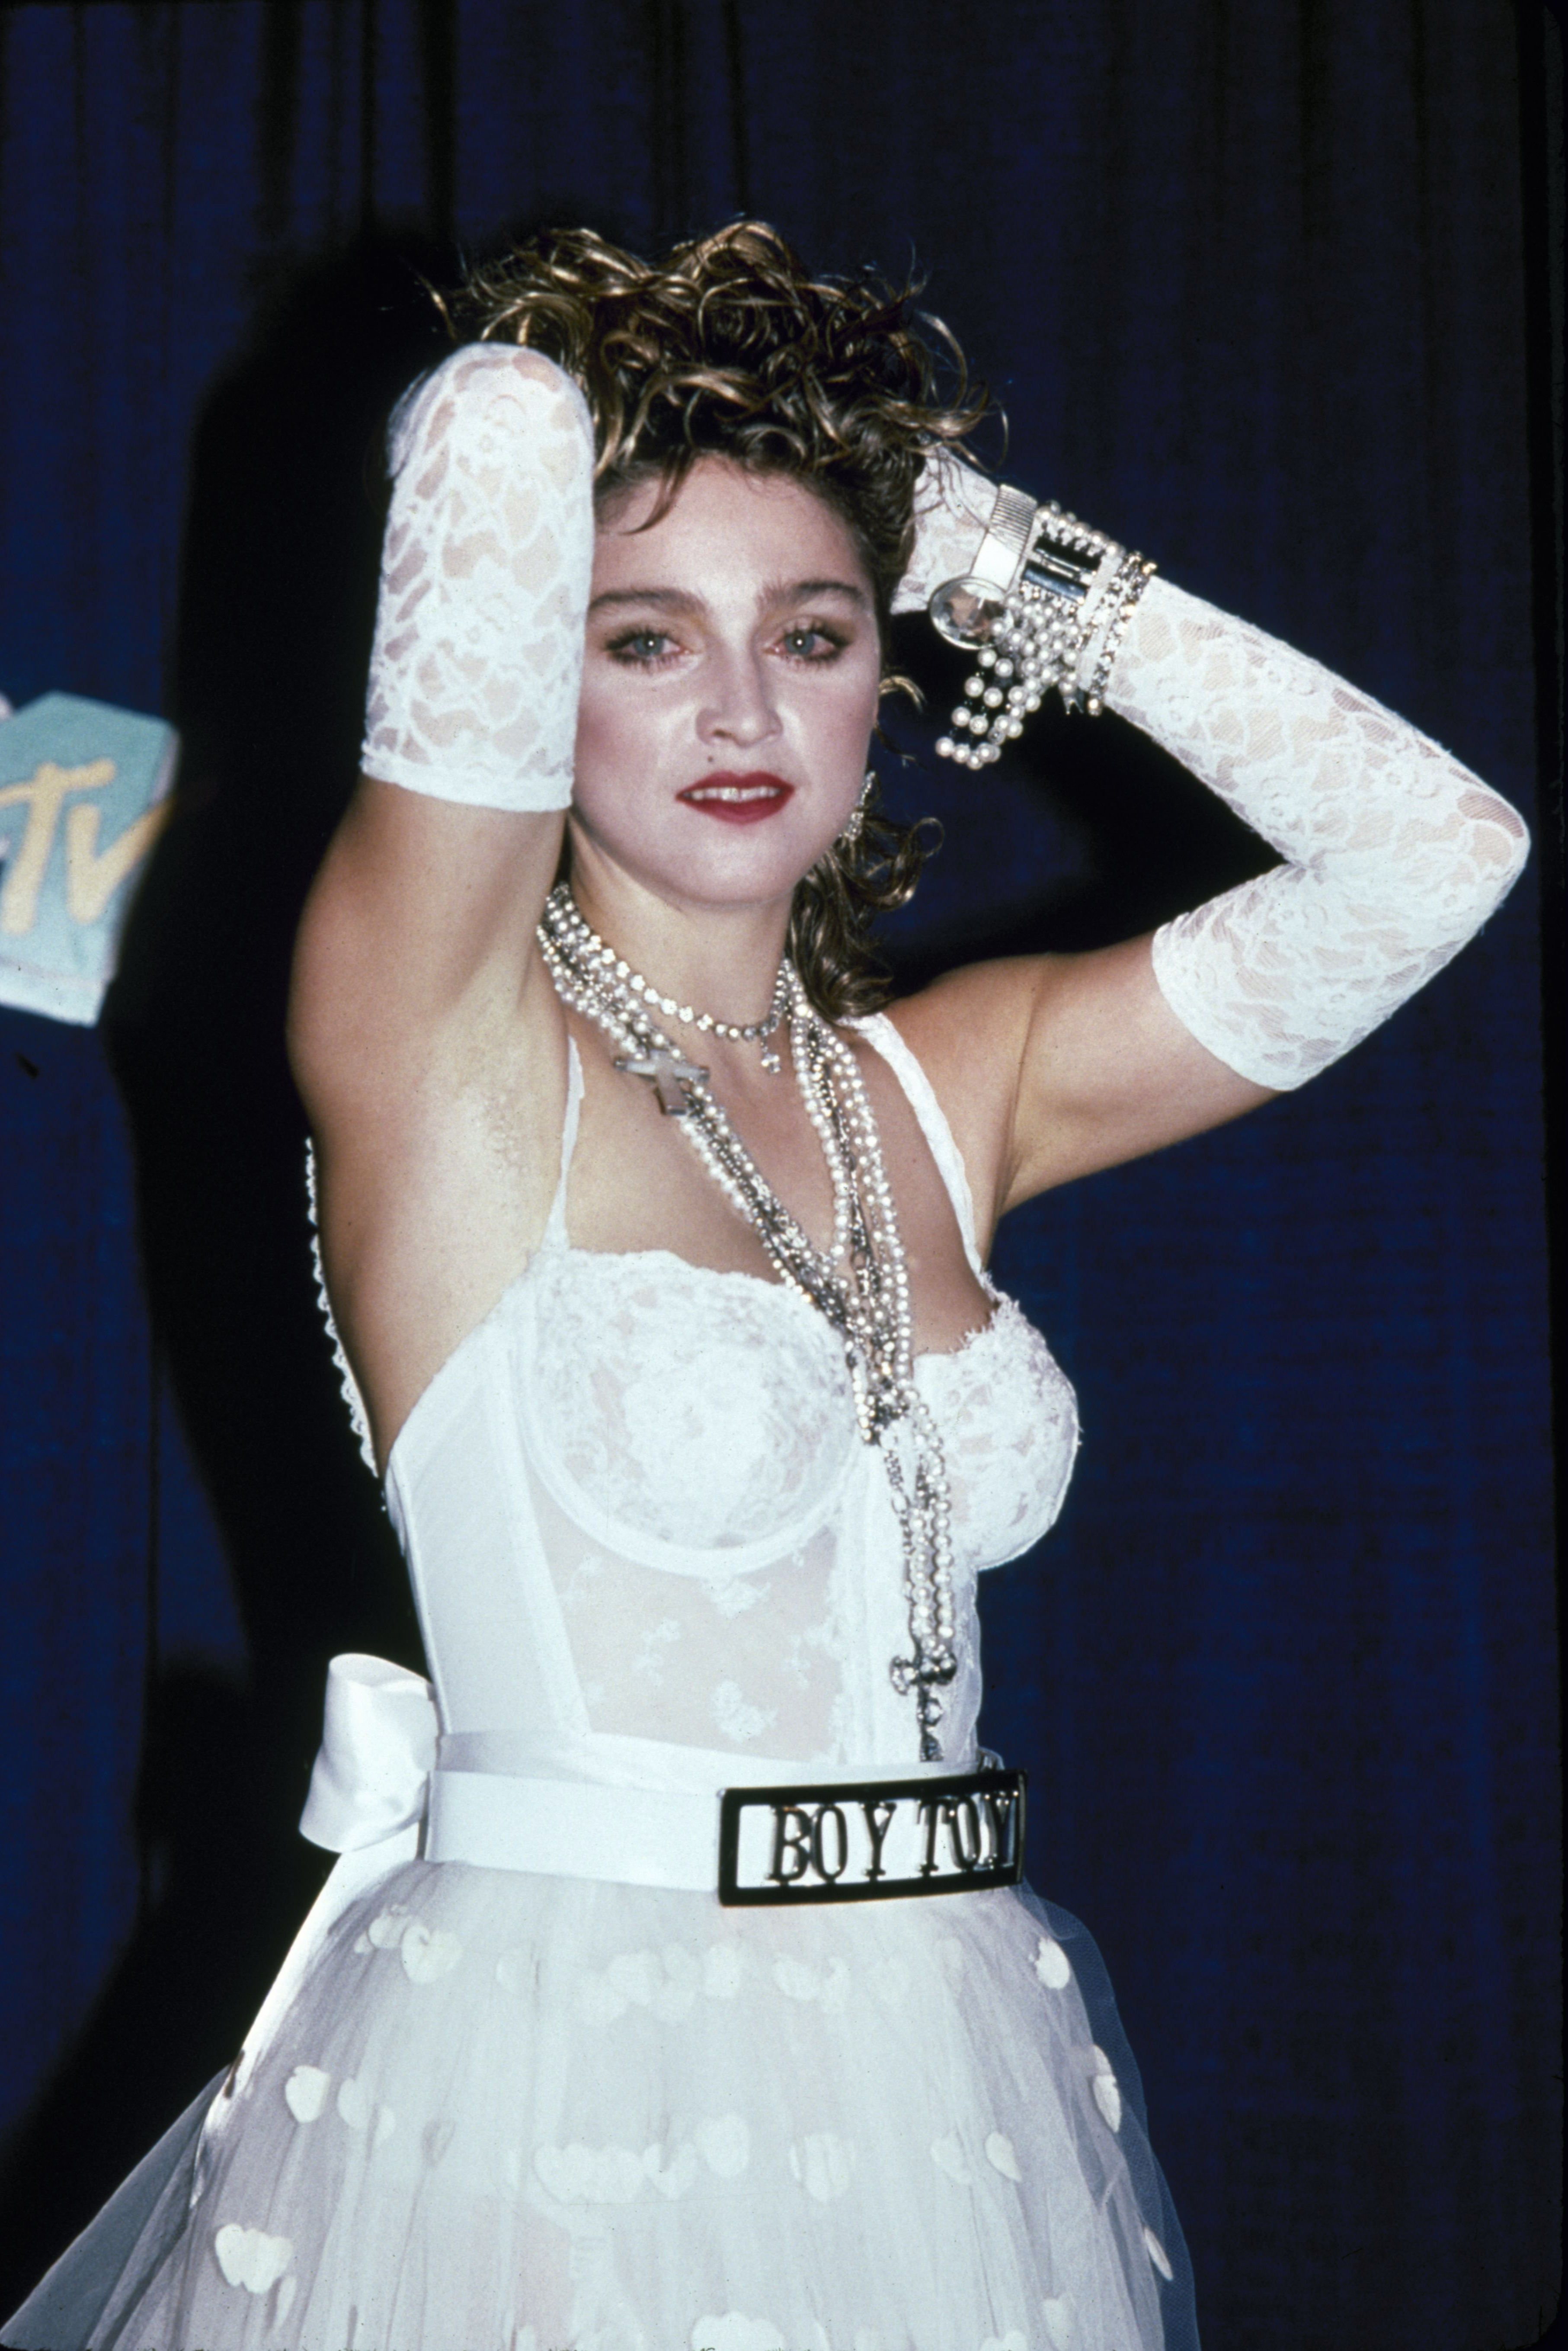 Madonna attends the MTV Video Music Awards in New York City on Sept. 14, 1984.